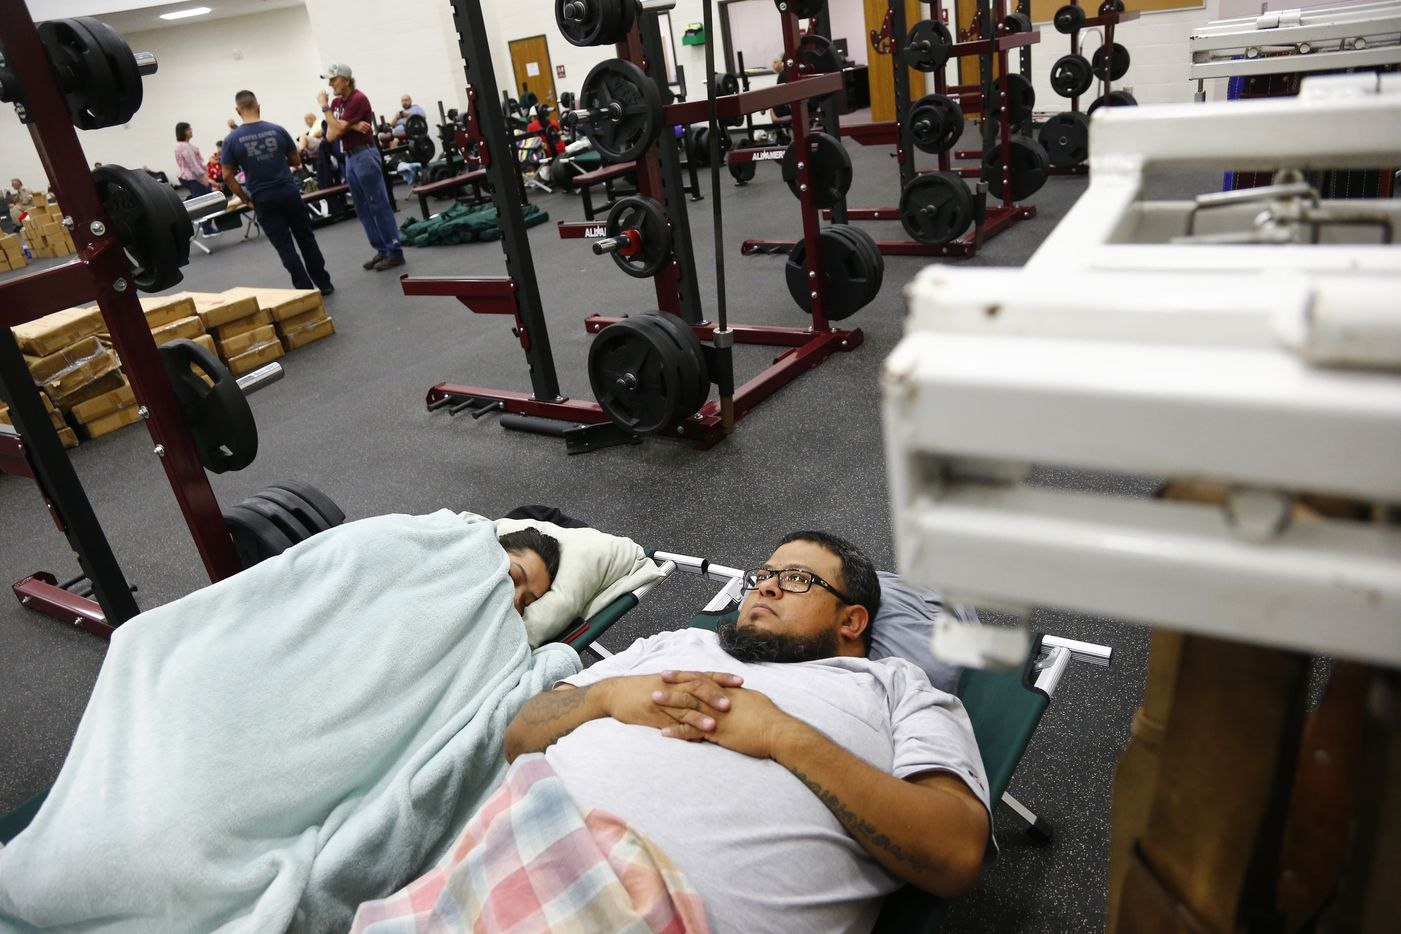 Simon and Stephanie Figueroa sleep in cots in the FEMA dome at Cal Allen High School which was designated for employees of city during Hurricane Harvey in Corpus Christi, Texas on Aug. 25, 2017. The couple were about to leave town and their brother invited them to stay.